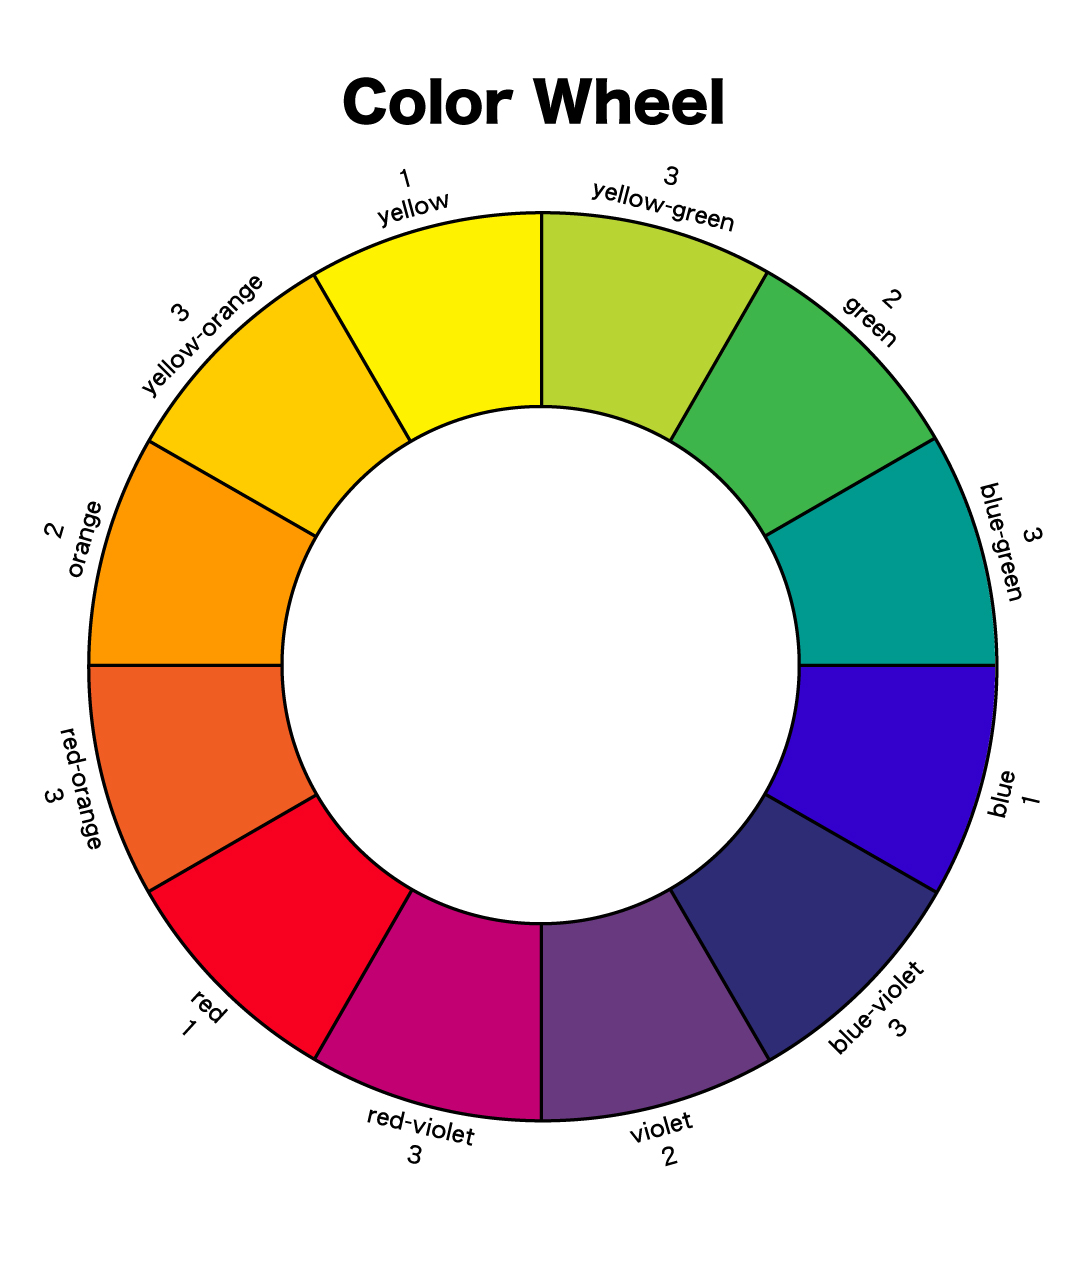 Green is the exact opposite of red on the color wheel.